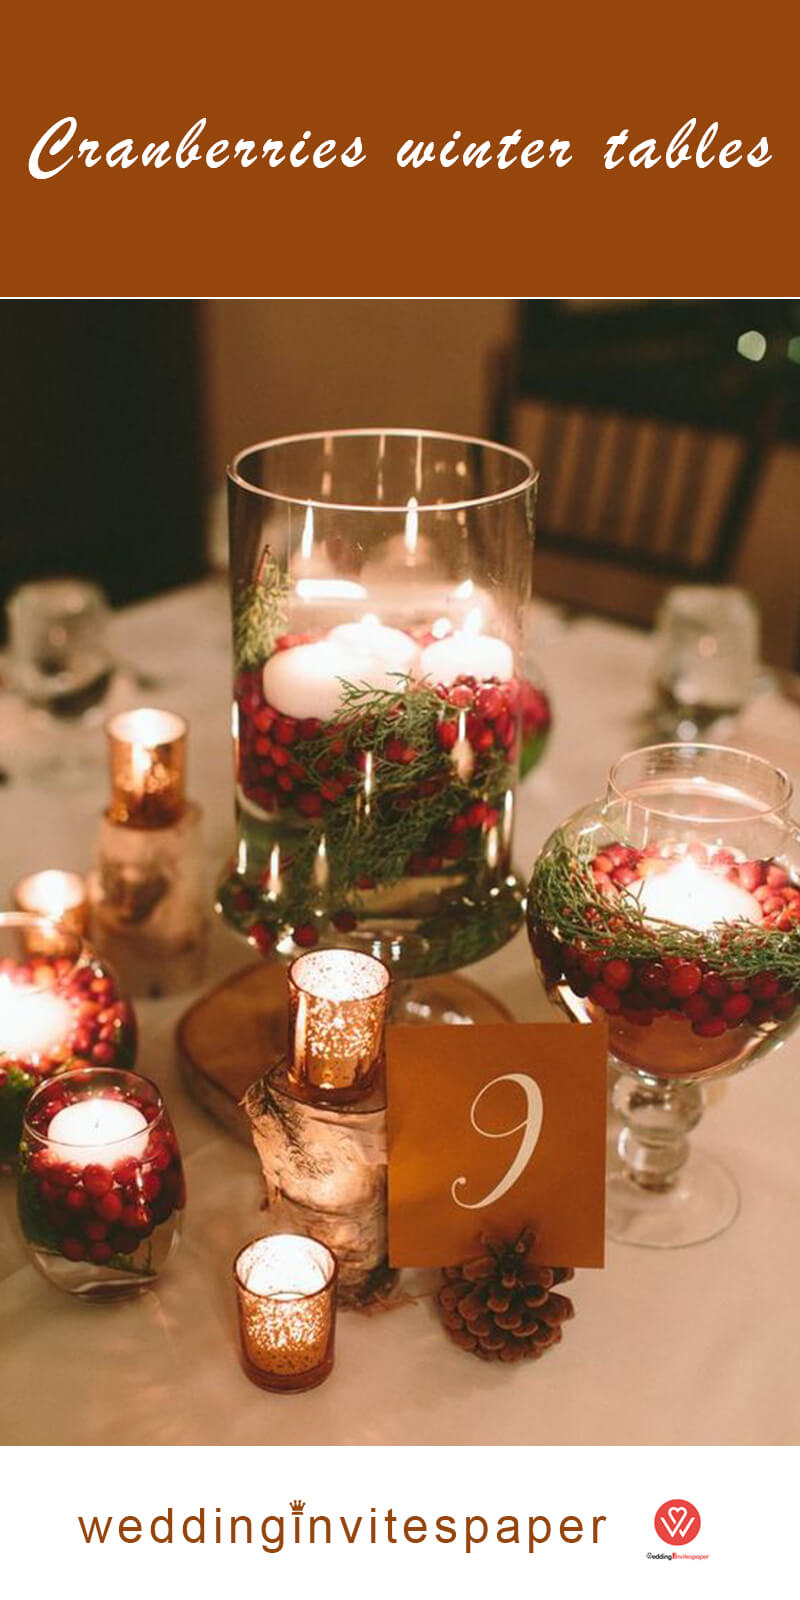 10 Cranberries winter tables.jpg